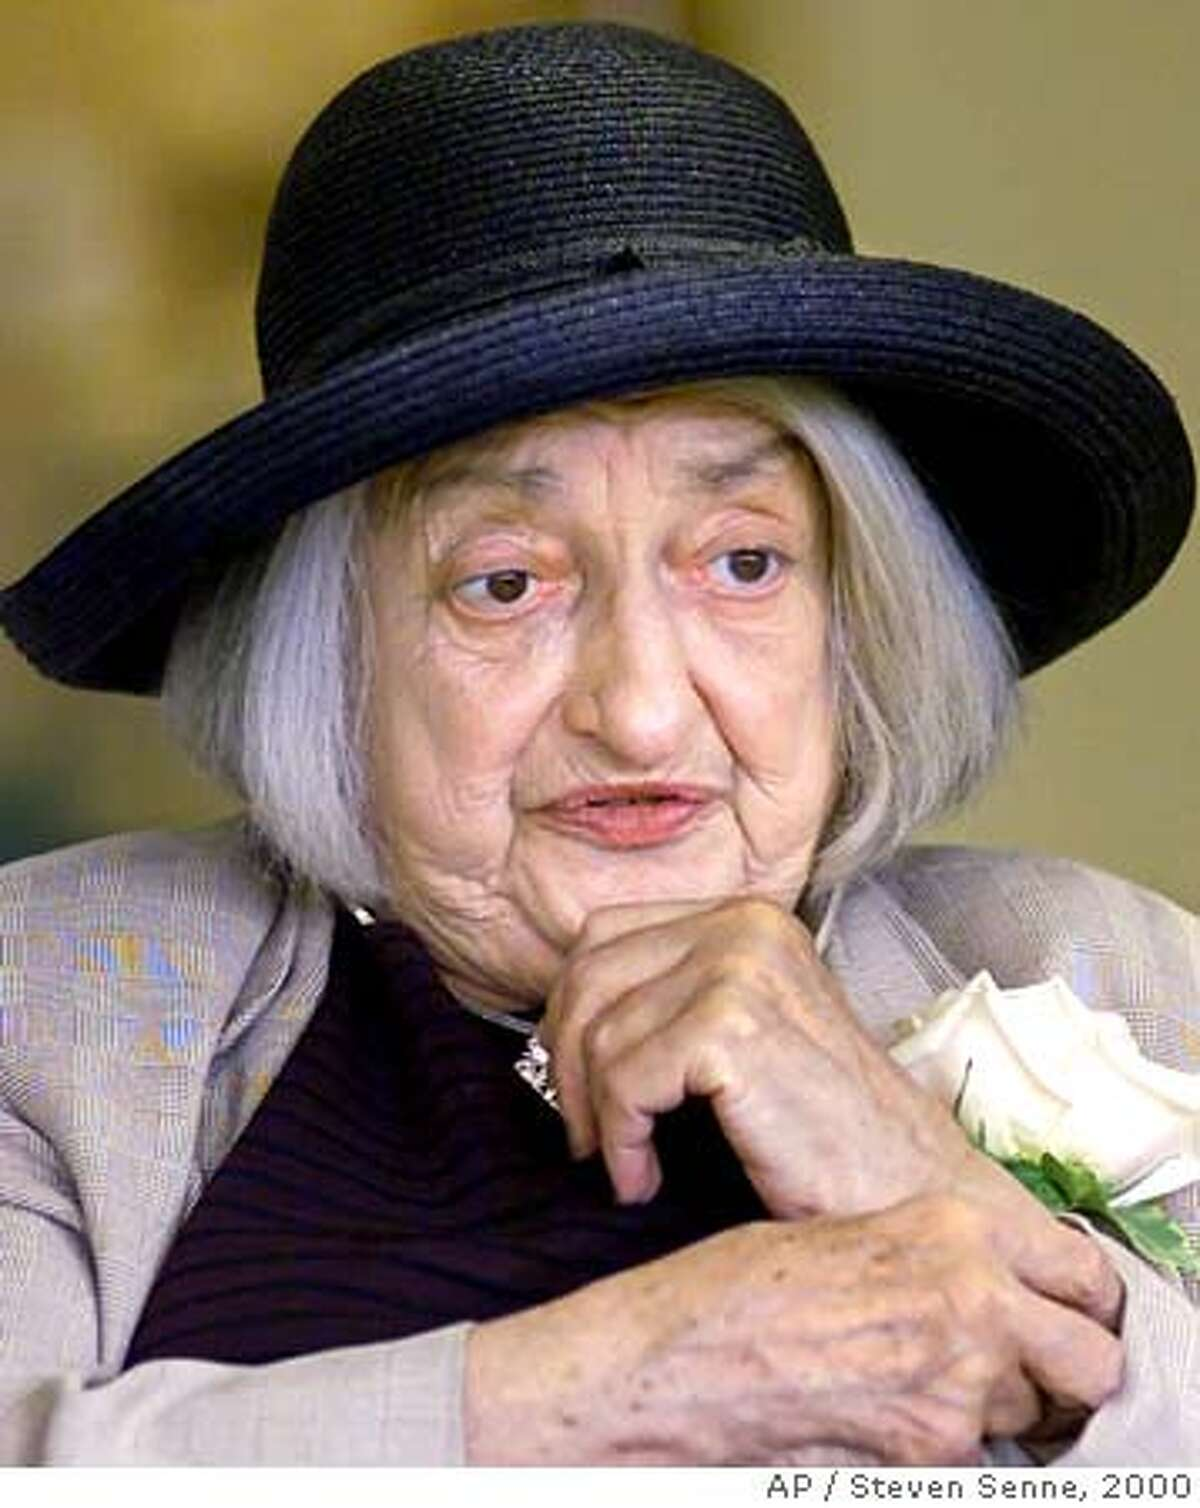 """** FILE ** Author and feminist, Betty Friedan, speaks at the annual meeting of the Hebrew Rehabilitation Center for Aged in Boston's Roslindale section, in this Sunday, May 7, 2000 file photo. Friedan, whose manifesto """"The Feminine Mystique"""" became a best seller in the 1960s and laid the groundwork for the modern feminist movement, died Saturday, Feb. 4, 2006, her birthday. She was 85. (AP Photo/Steven Senne)"""